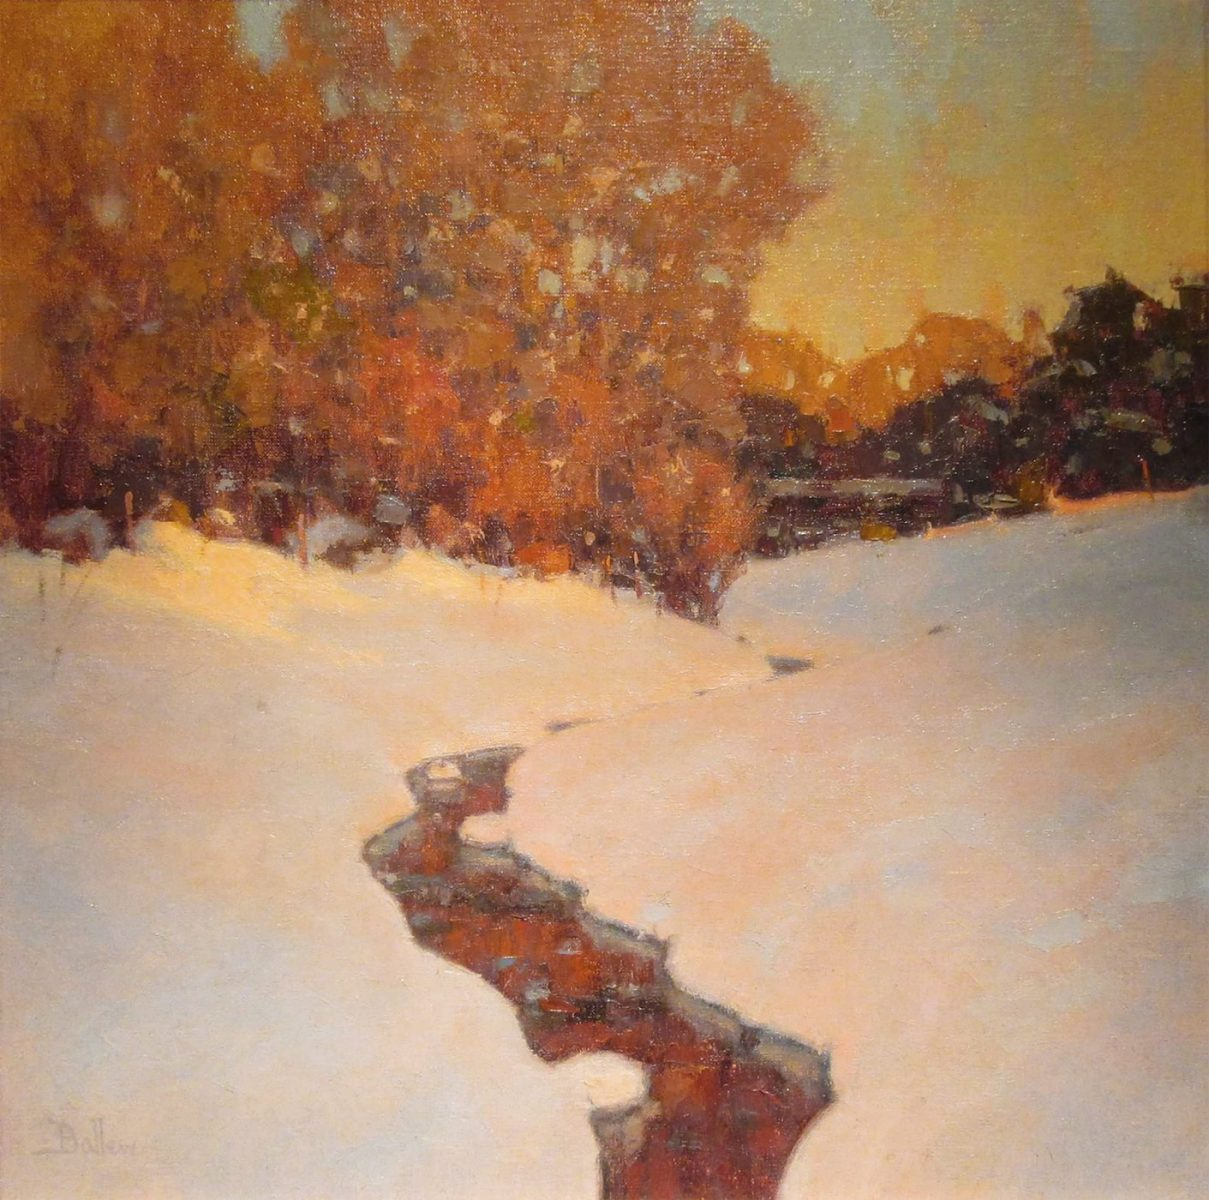 Winter Evening by David Ballew